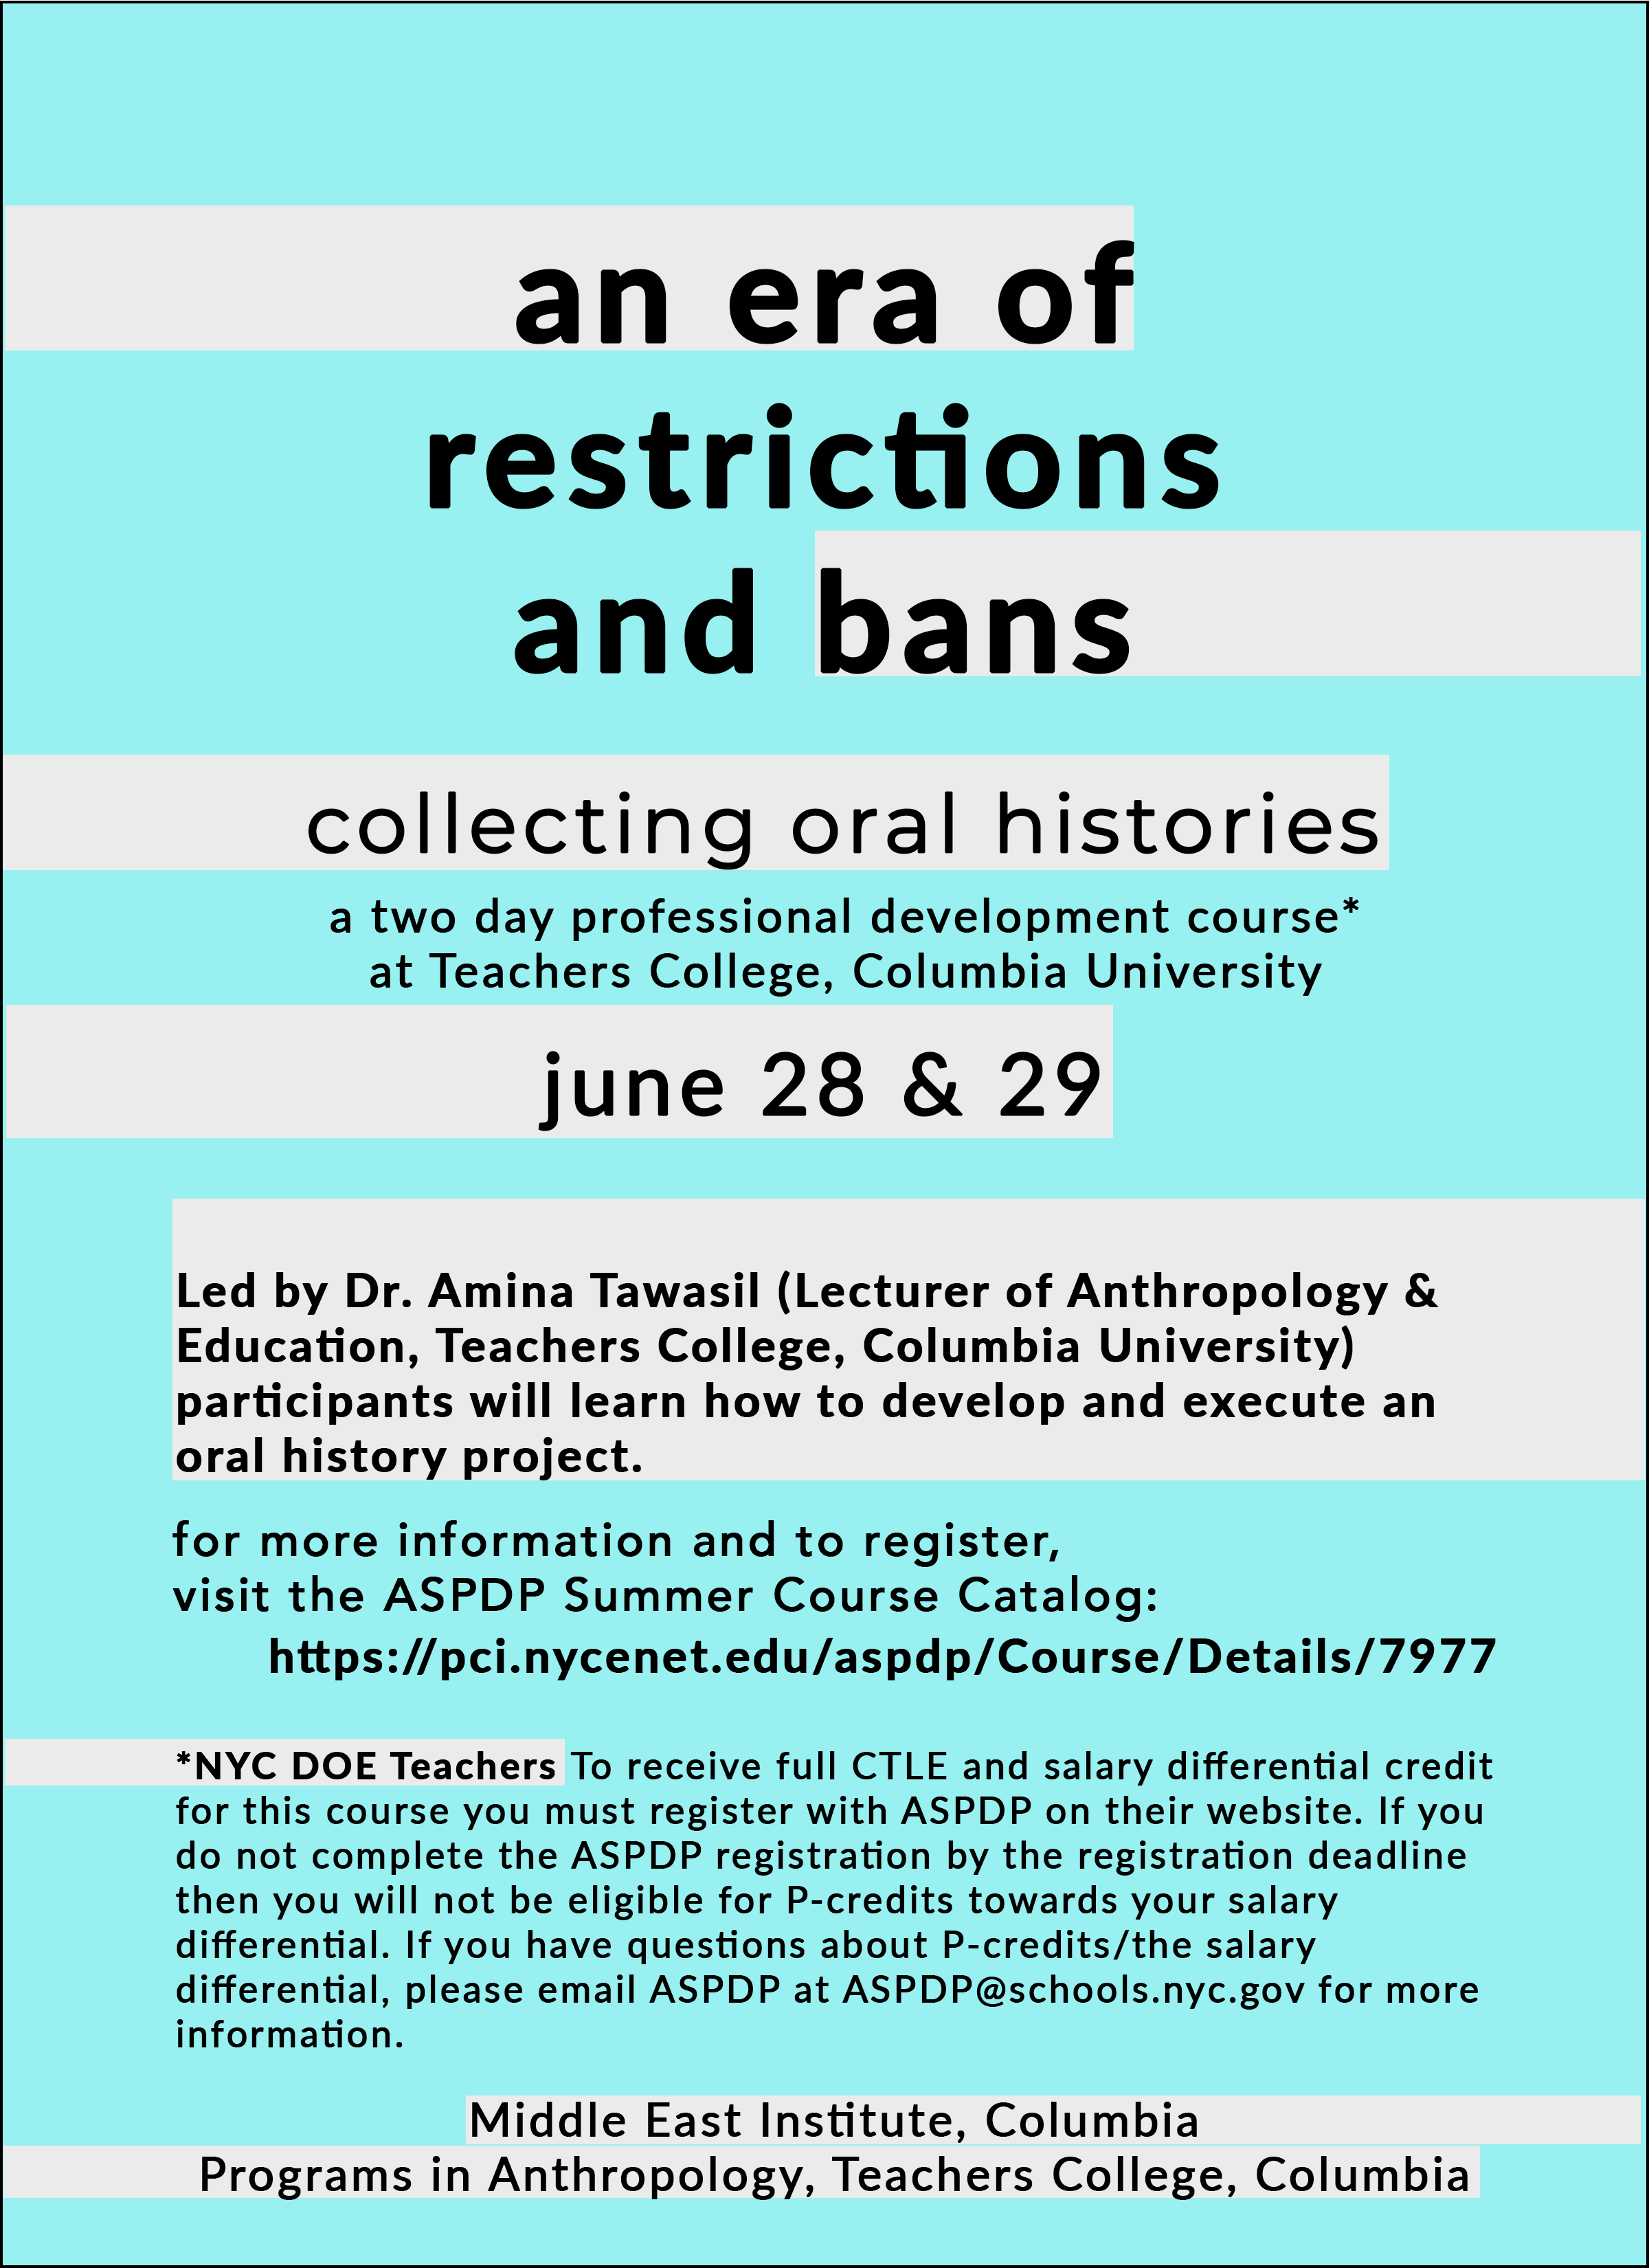 an_era_of_restrictions_and_bans_su_2019.png